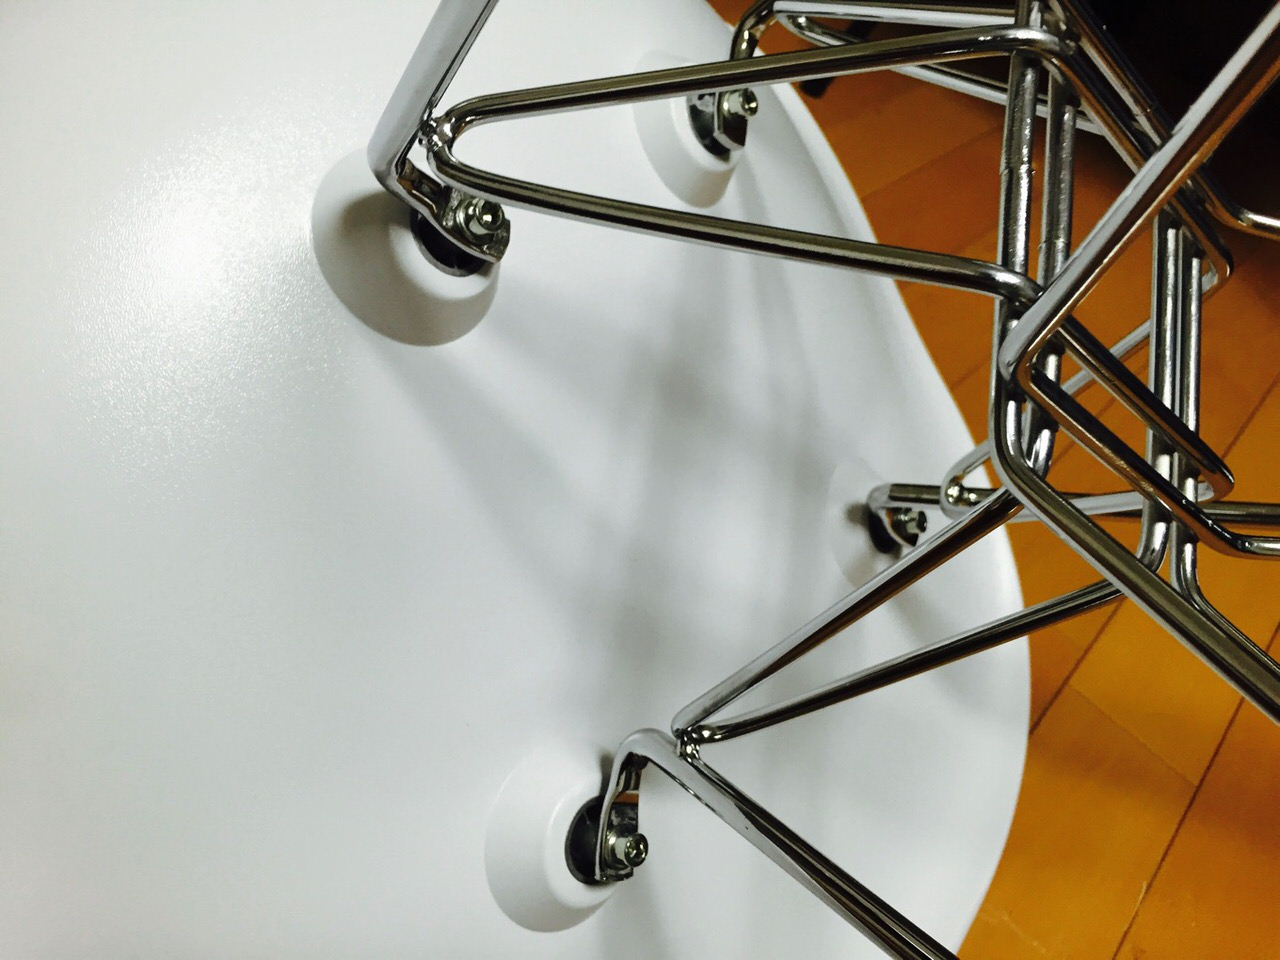 Eames dsr reproduct5